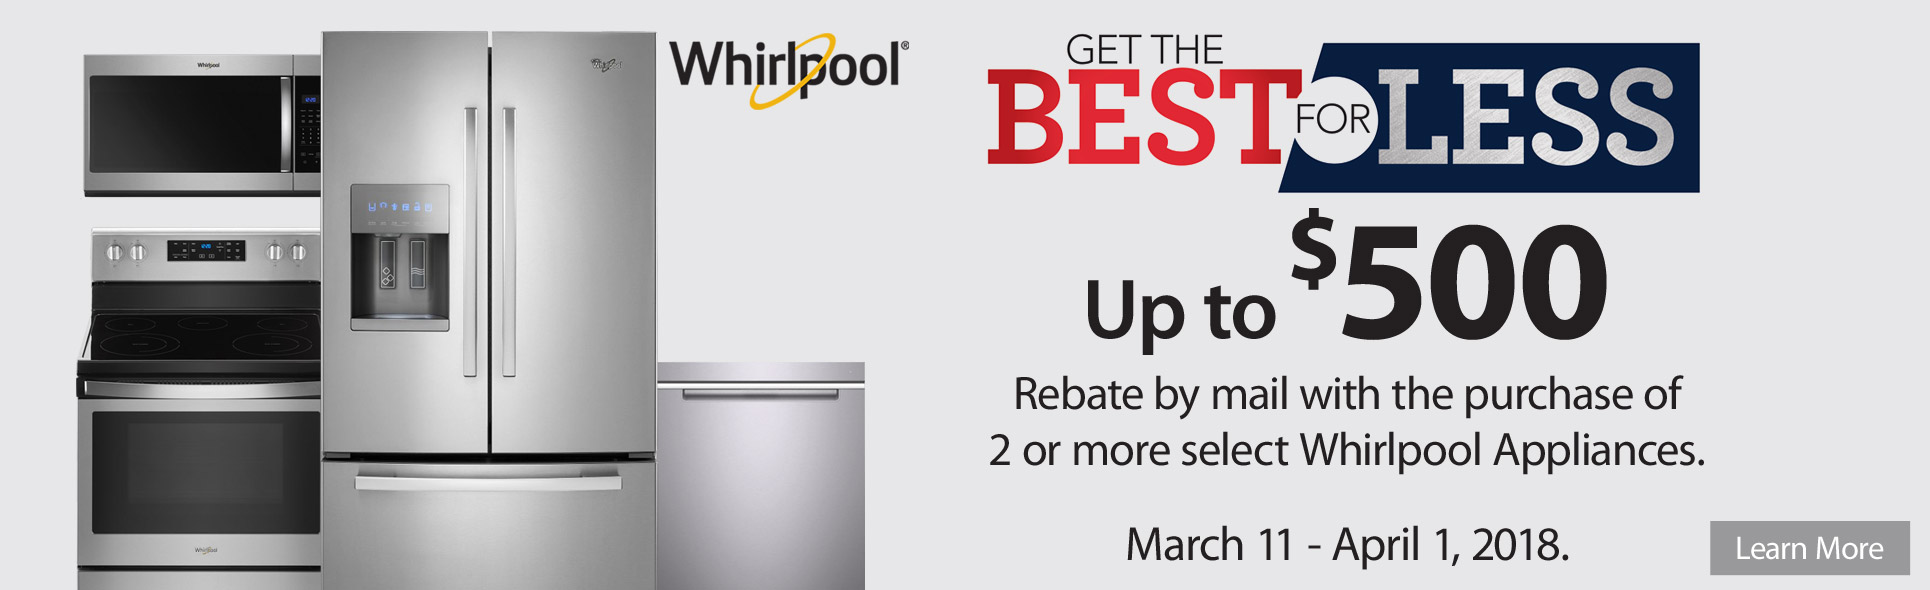 Whirlpool Best For Less- Save up to $500